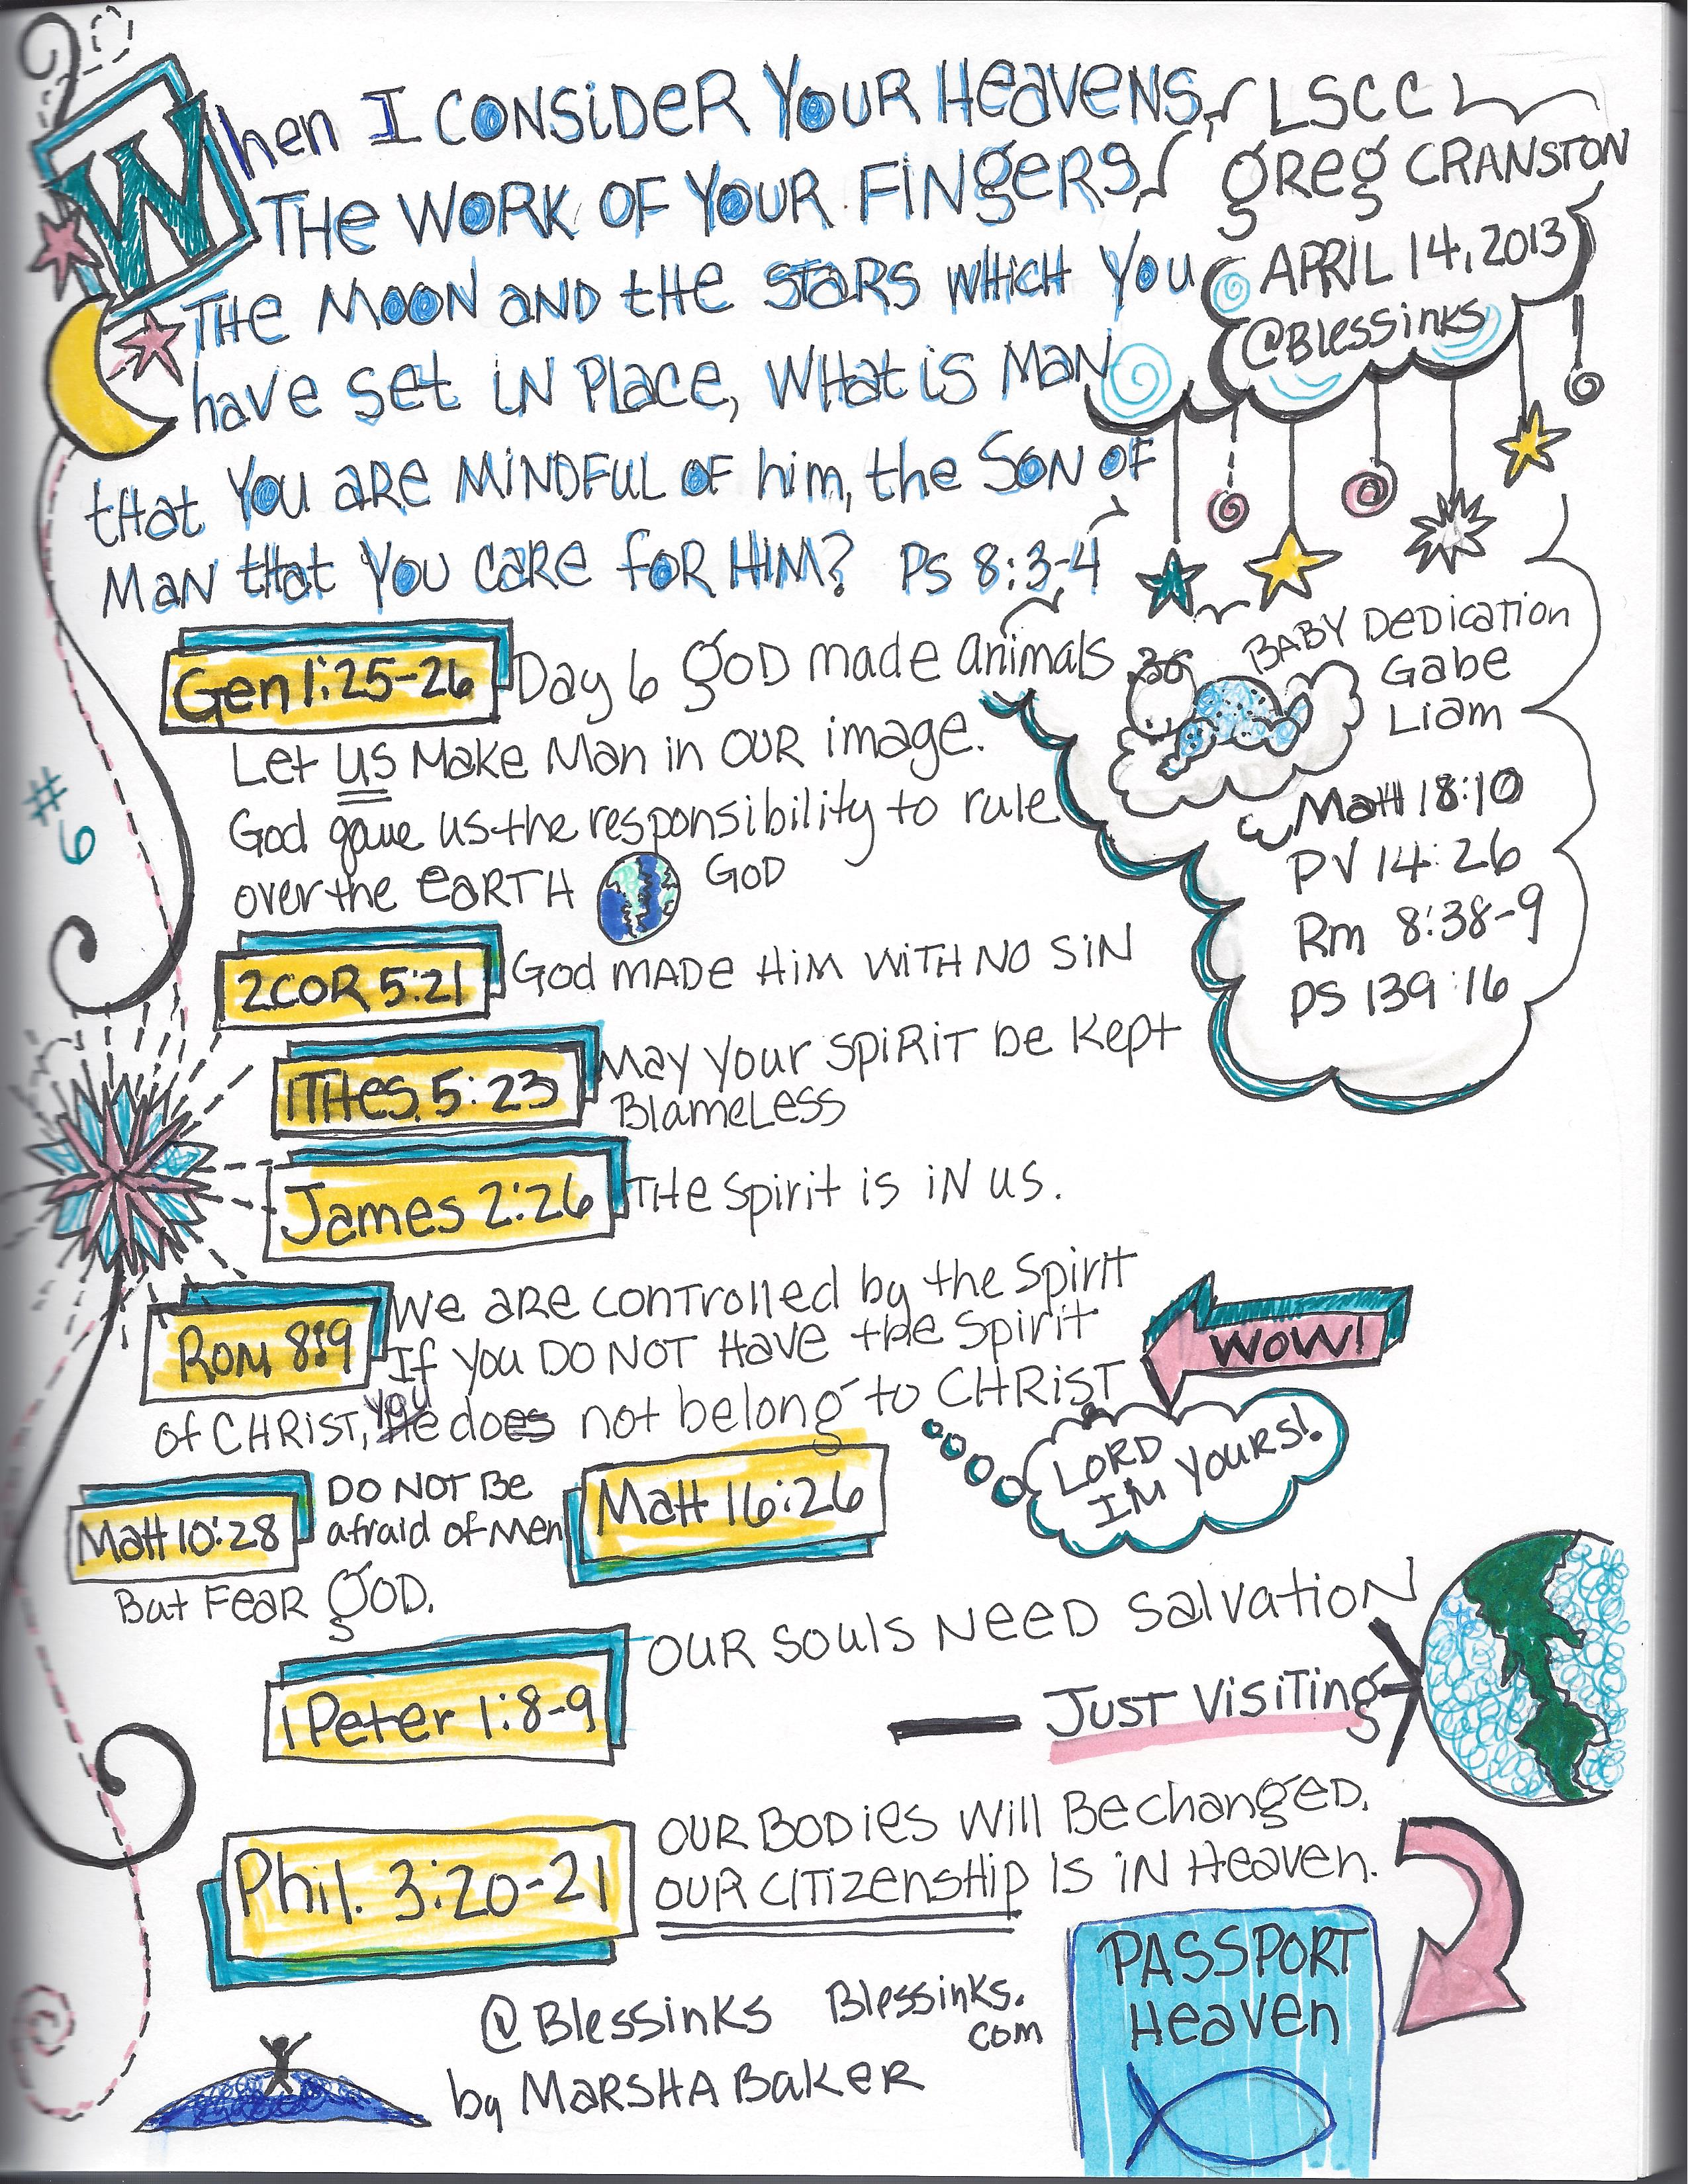 Sermon Sketchnotes : PS 8:3-4 Who is Man that You would care for him?